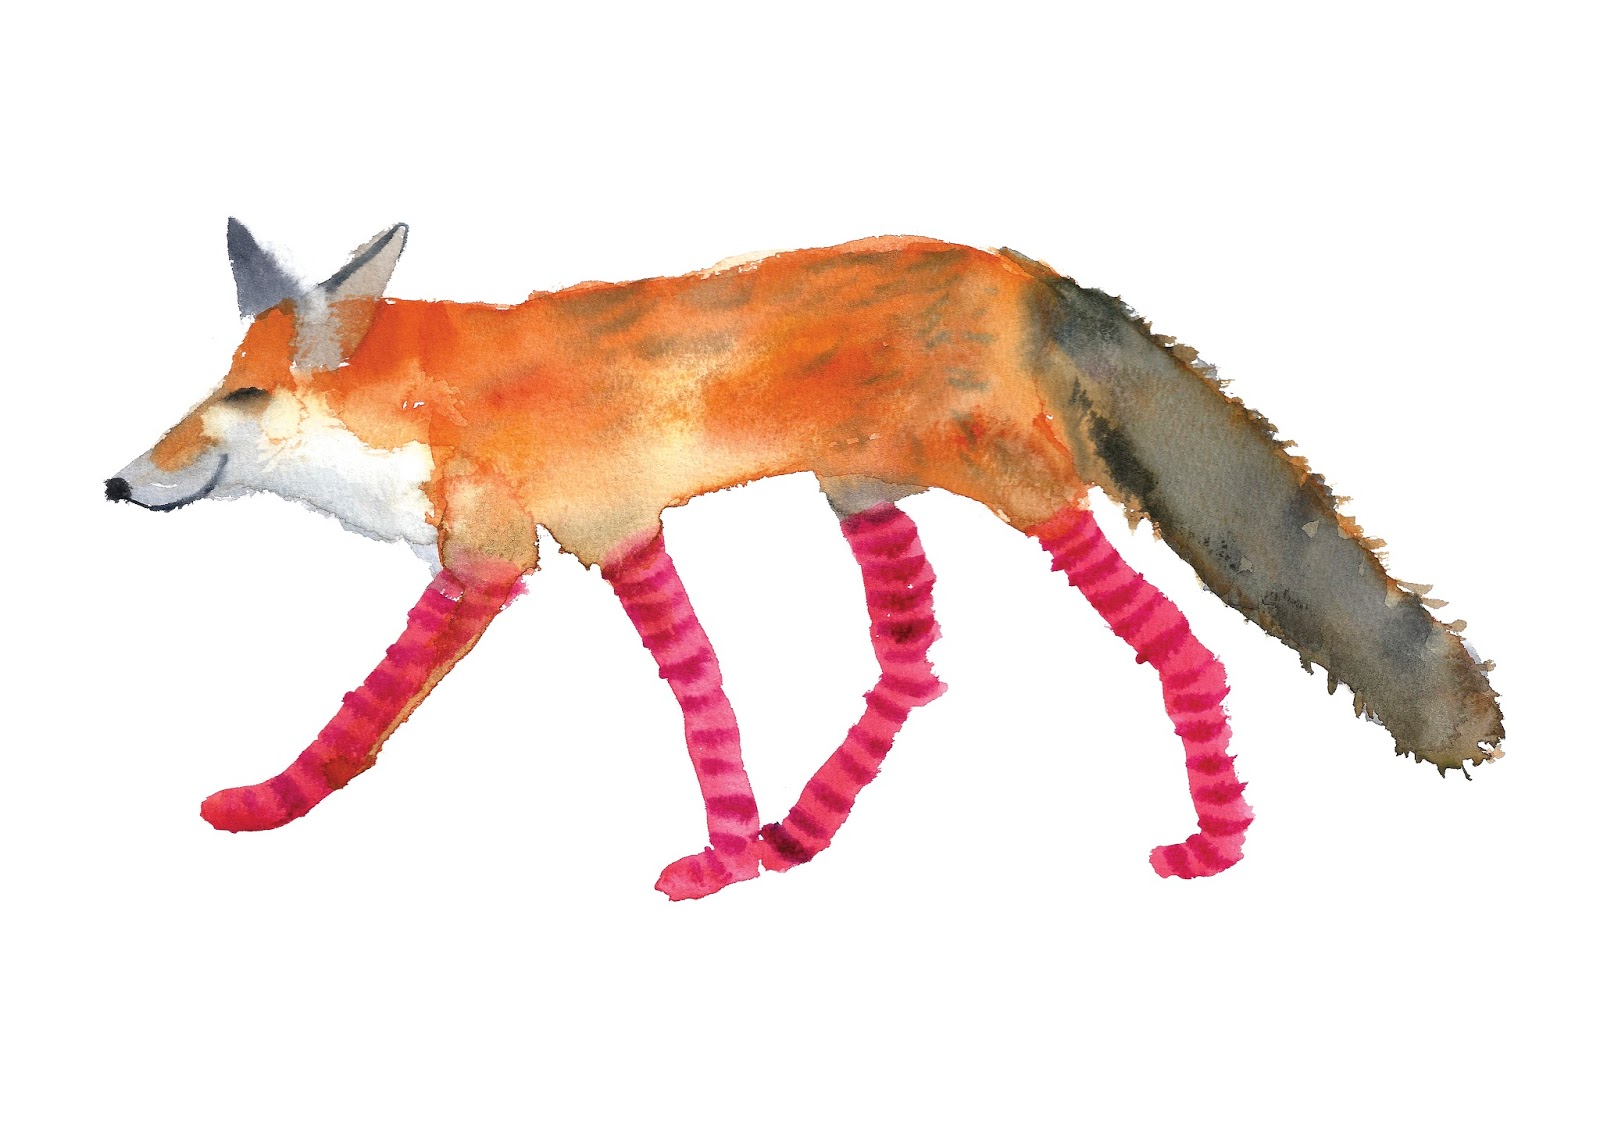 Rosie Webb's illustrations - Fox in Socks